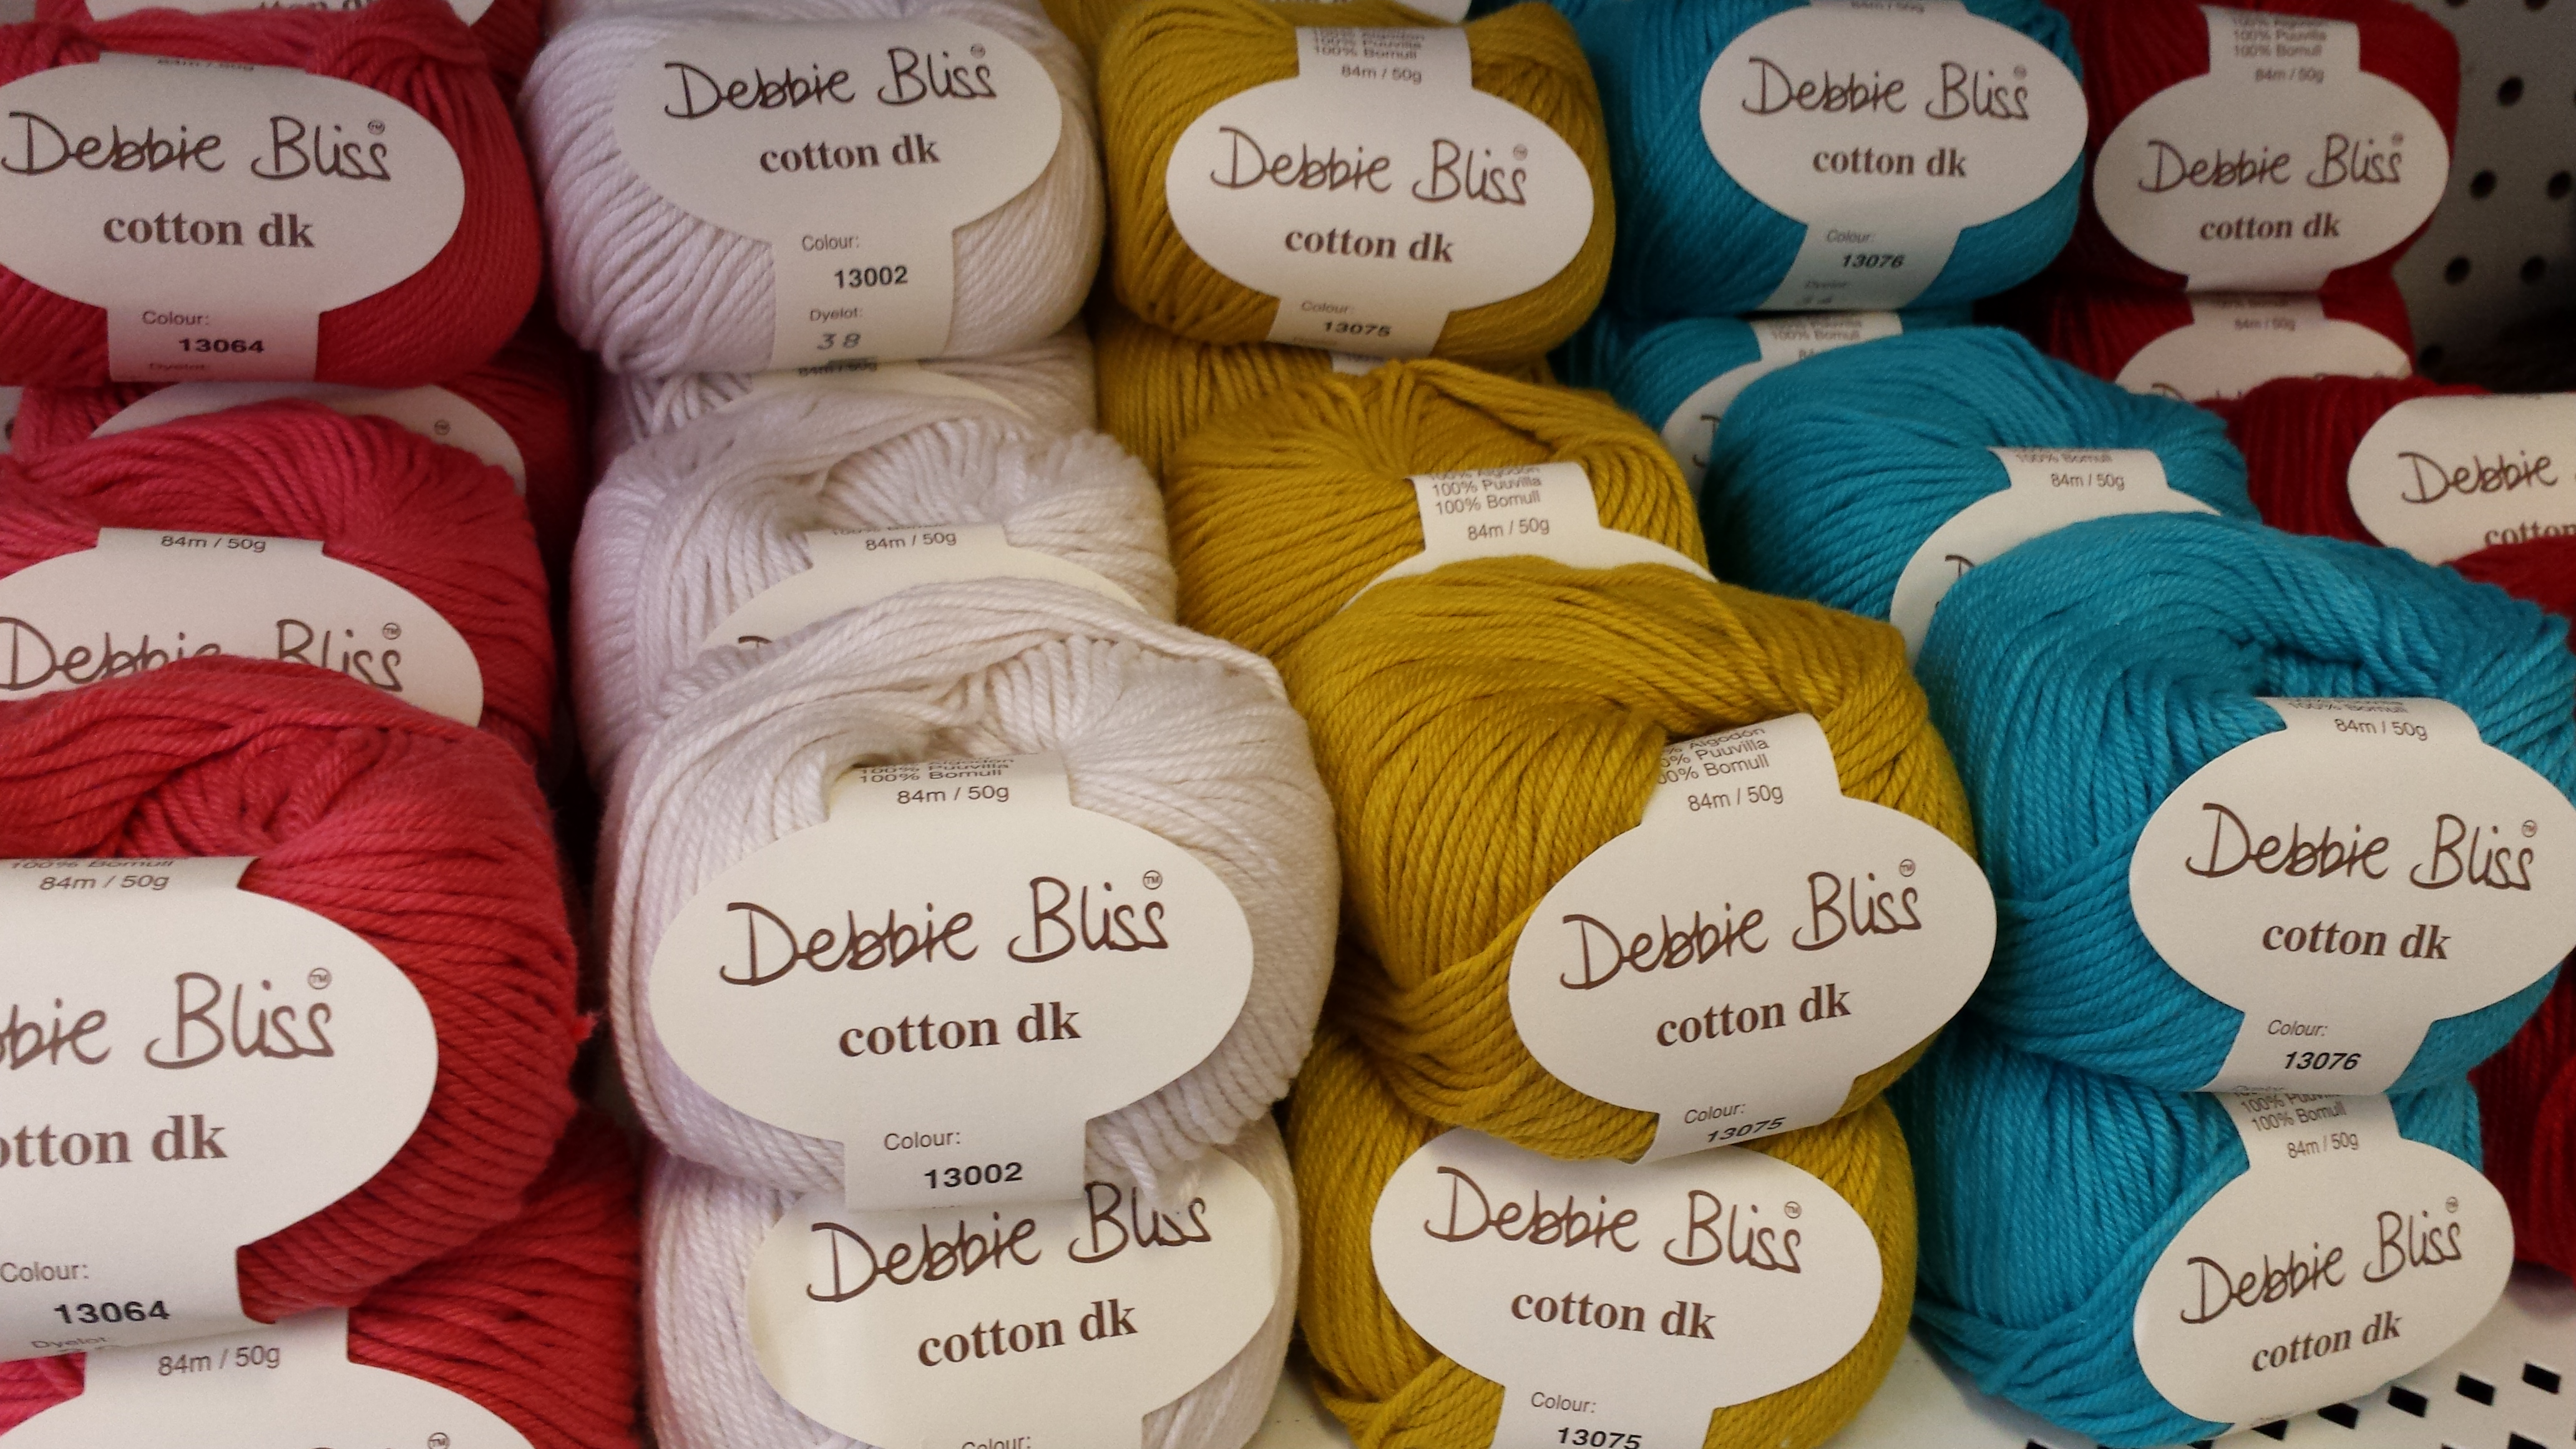 Debbie Bliss Cotton DK – Spindle, Shuttle, and Needle